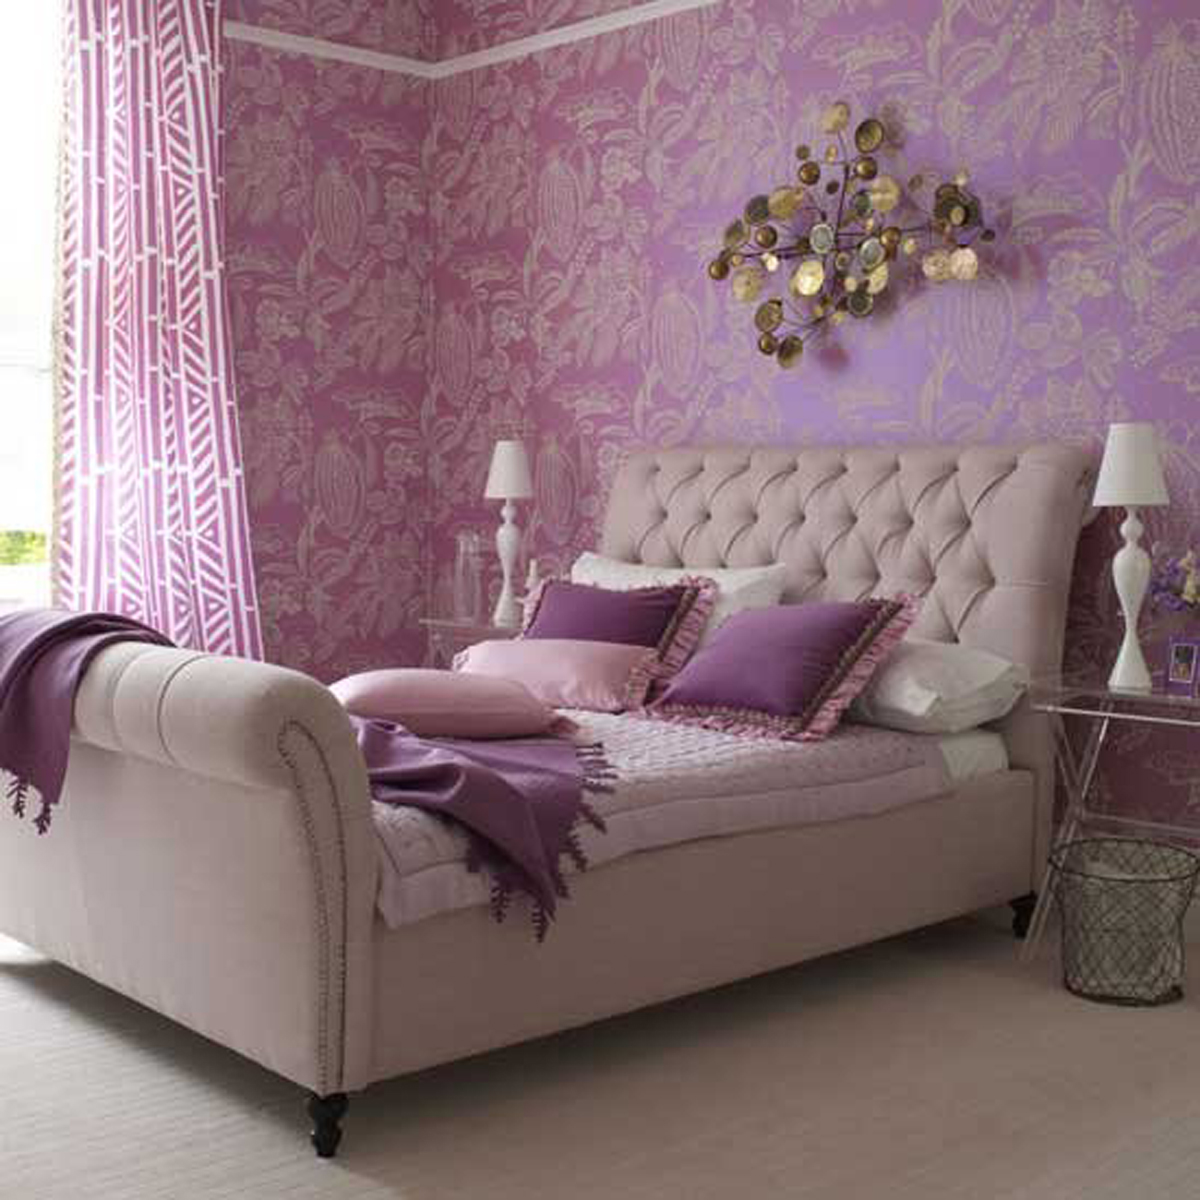 decorative bedroom decor designs On bedroom decorative accessories